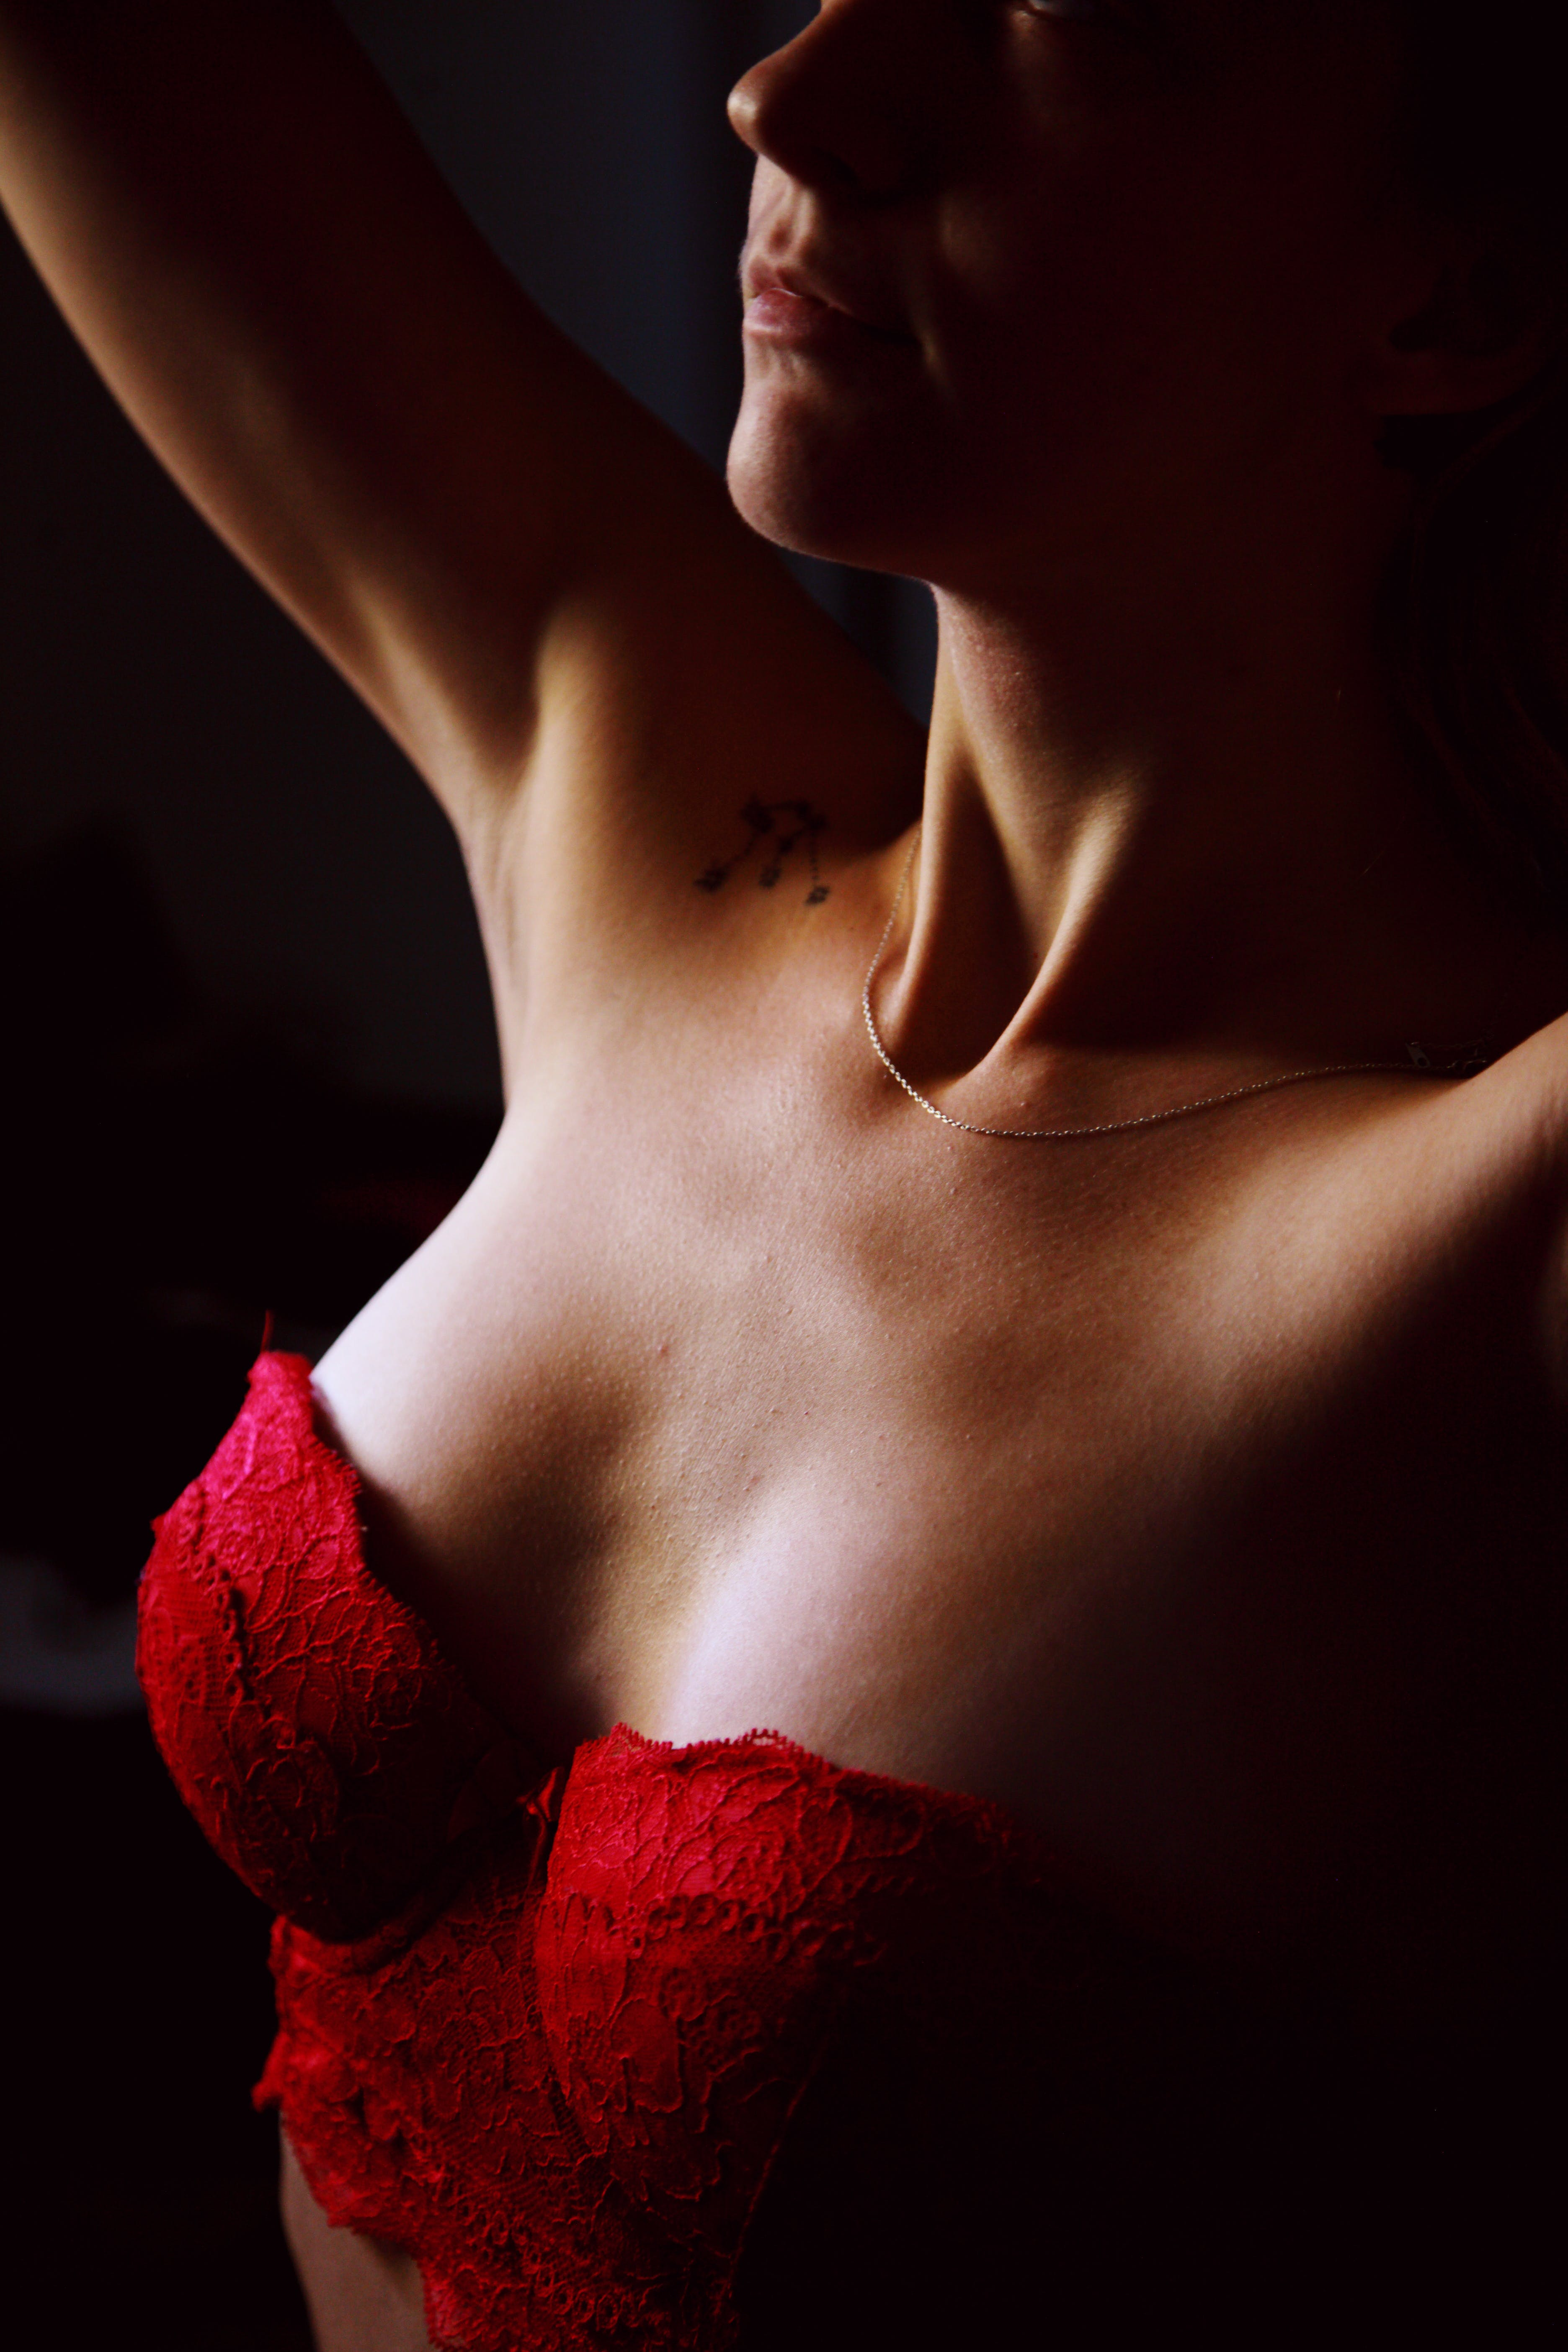 Close-up Photo of Woman Wearing Red Bralette